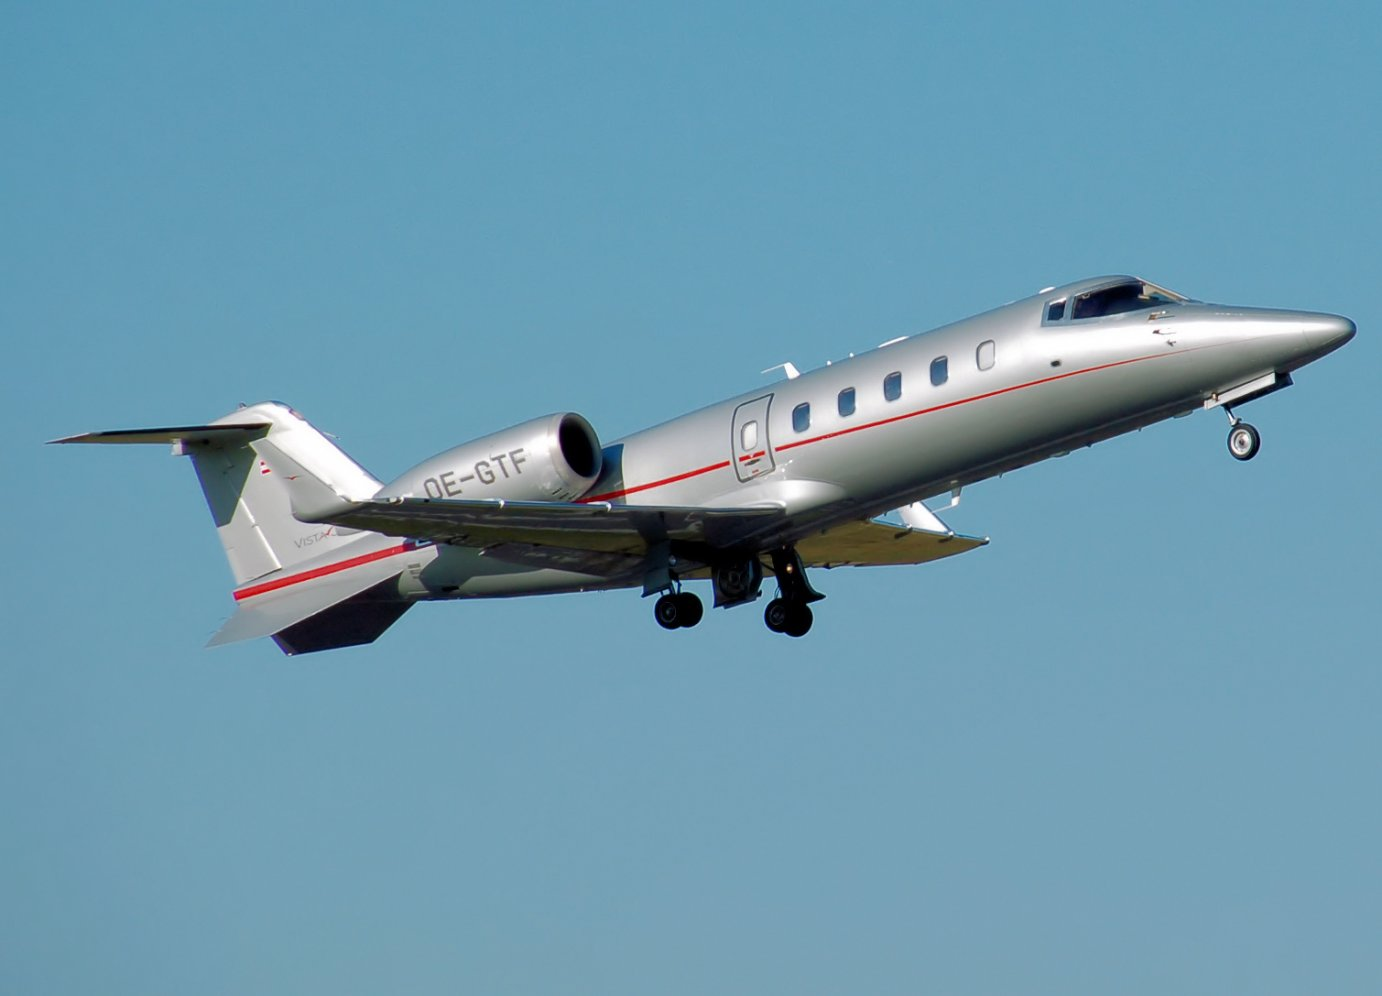 The Learjet 60 is a mid-size business jet manufactured by Bombardier Aerospace in Wichita.  (File photo from Wikipedia)